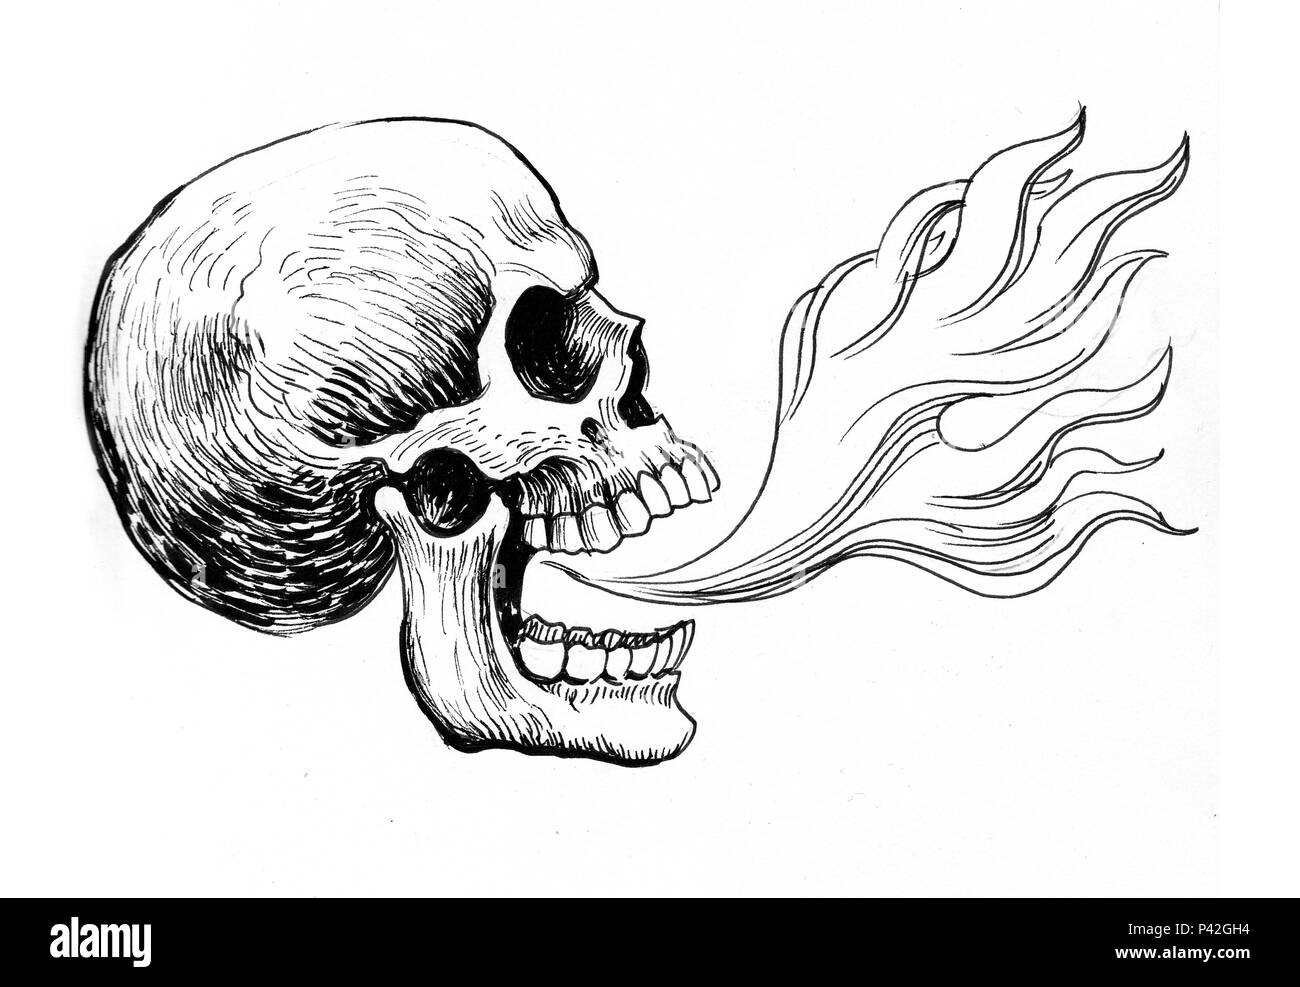 Human Skull And Fire Ink Black White Drawing